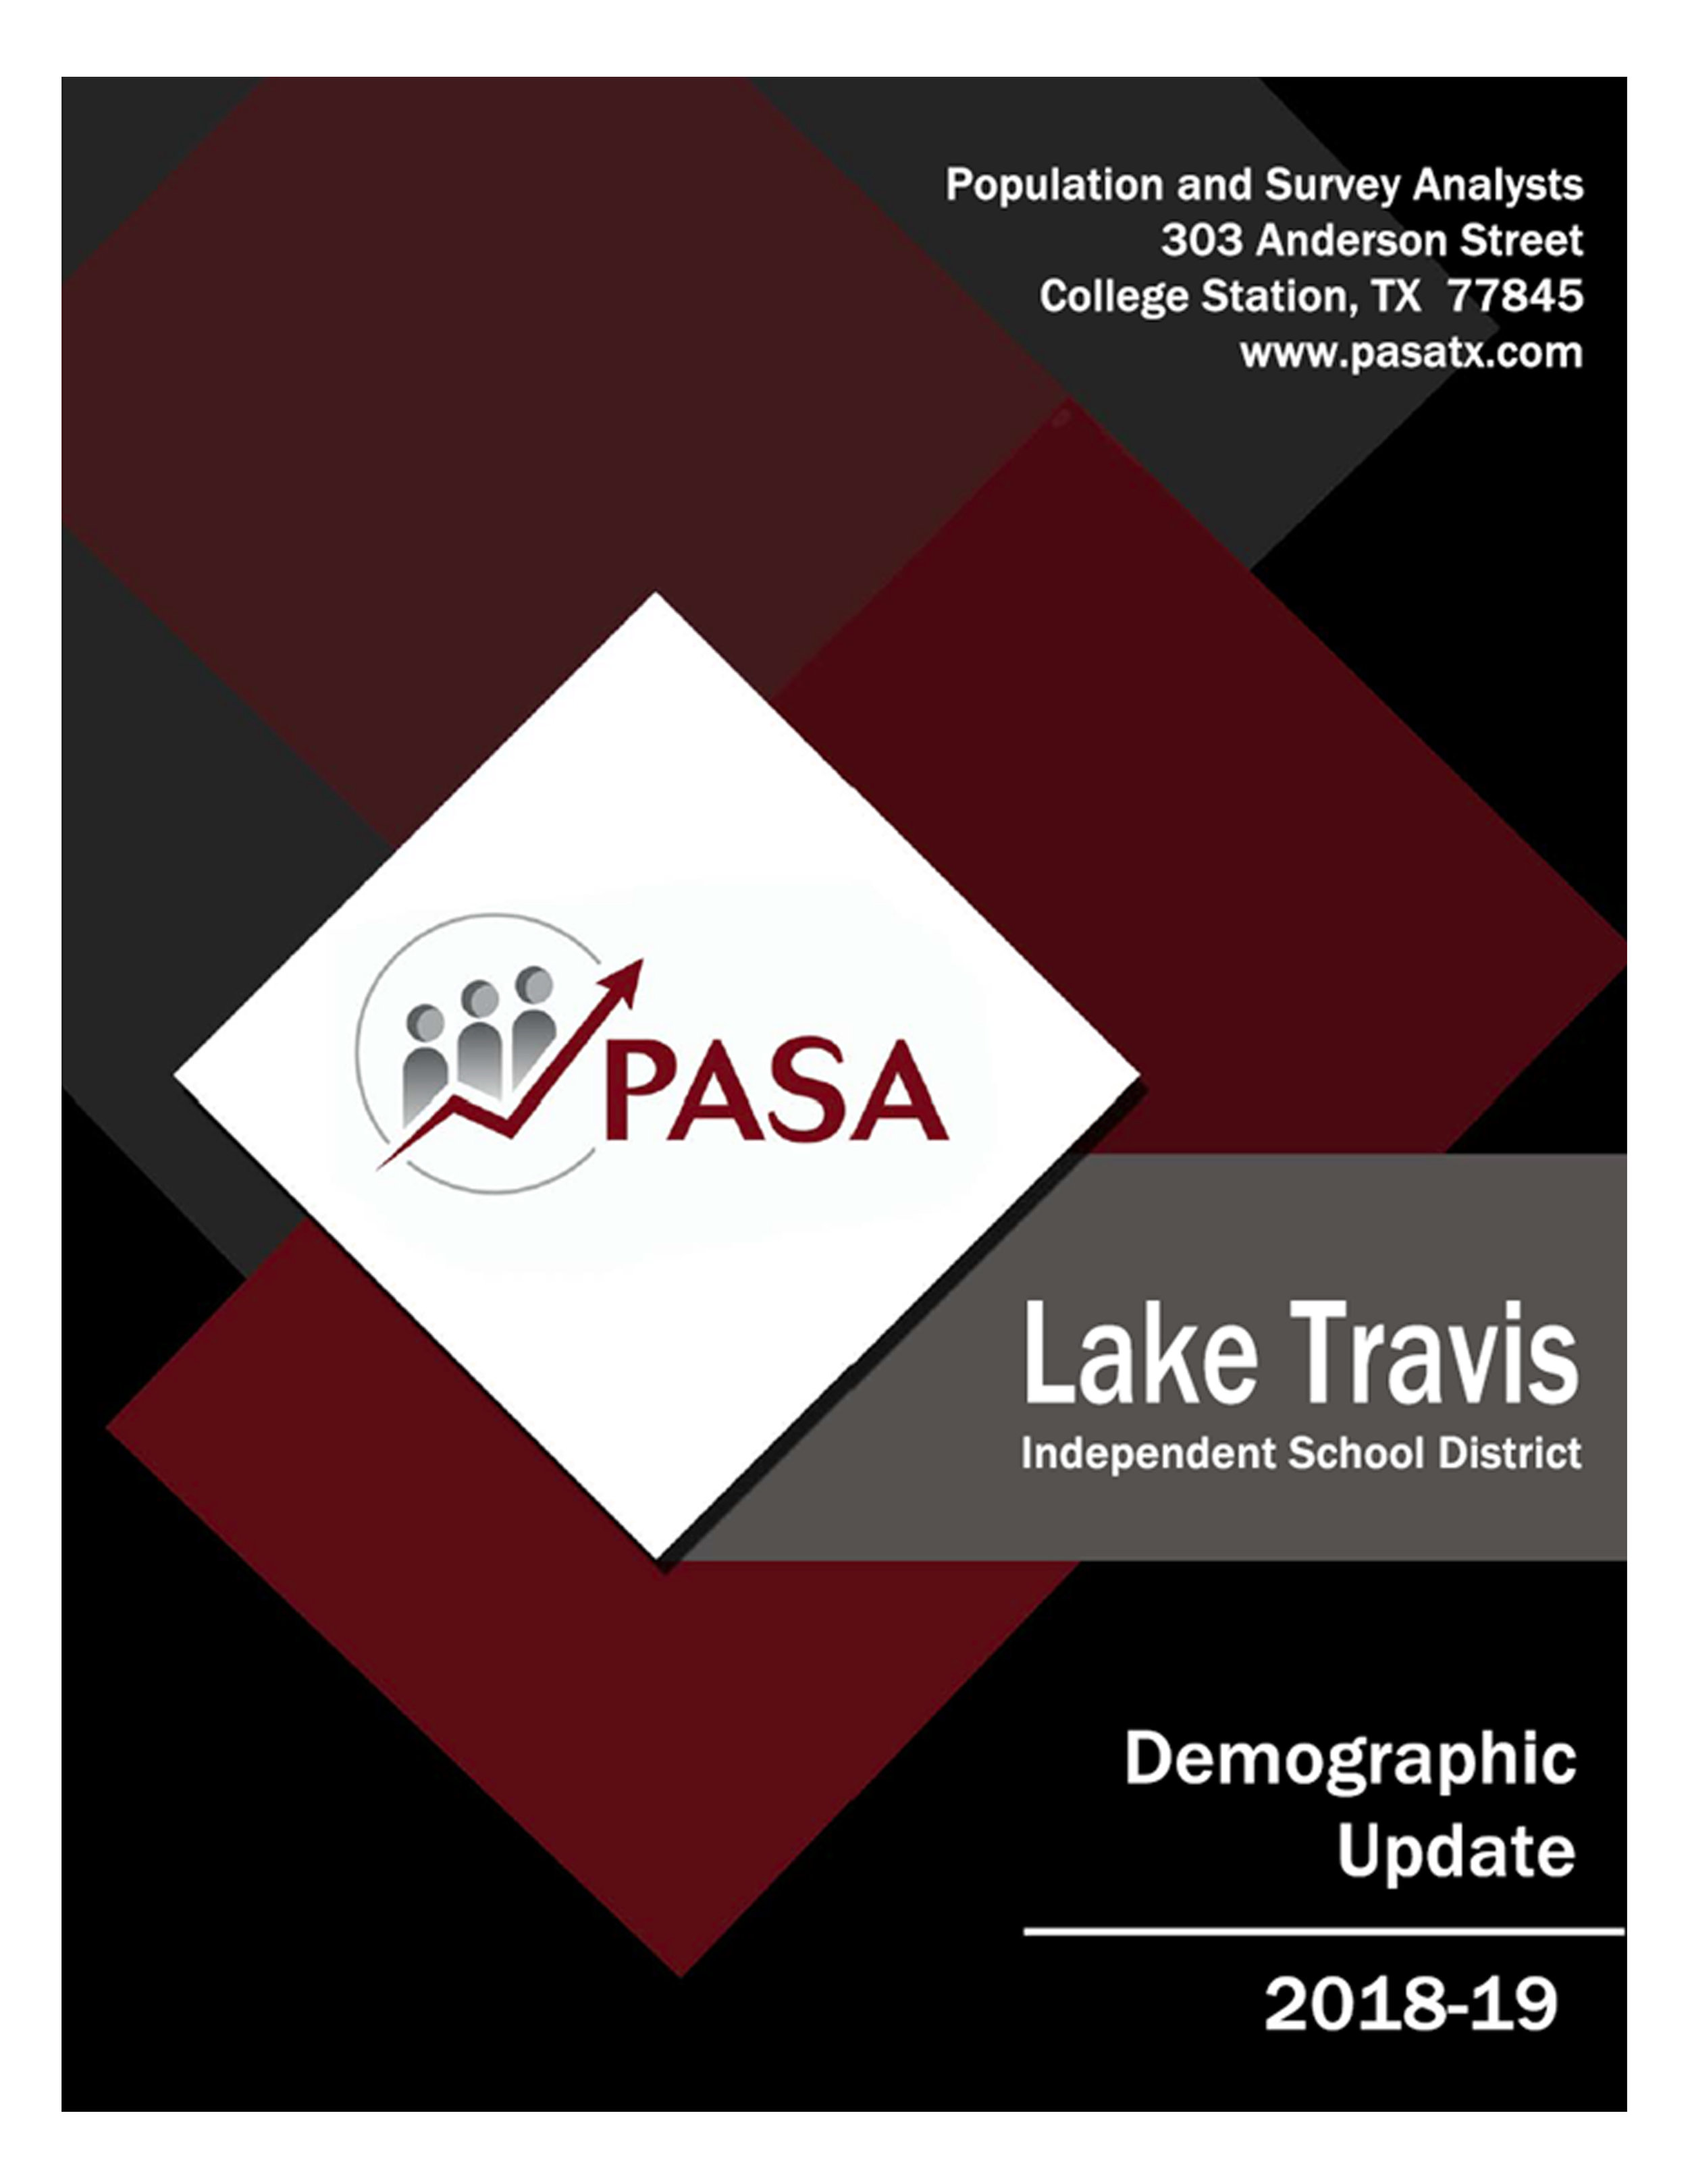 PASA Demographic Update Cover.jpg